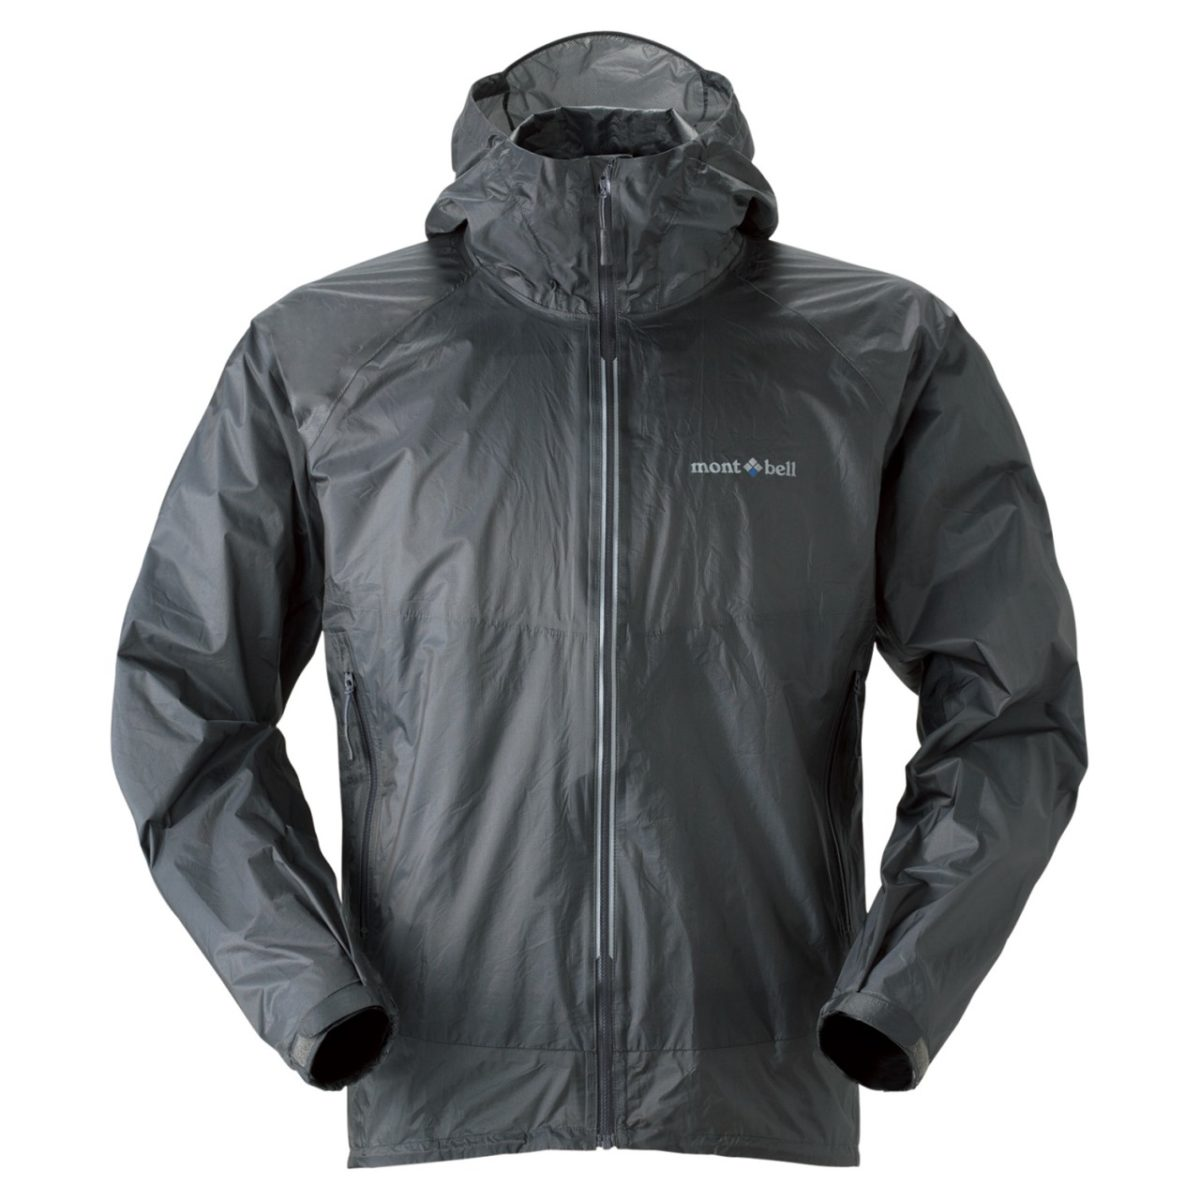 "Rain jackets designated as ""water-resistant"" do not prevent rain from penetrating fabric, but they delay seepage. These jackets are breathable and lightweight. For full protection, go for a waterproof jacket, which is treated with various laminates and coatings for full water repellency."